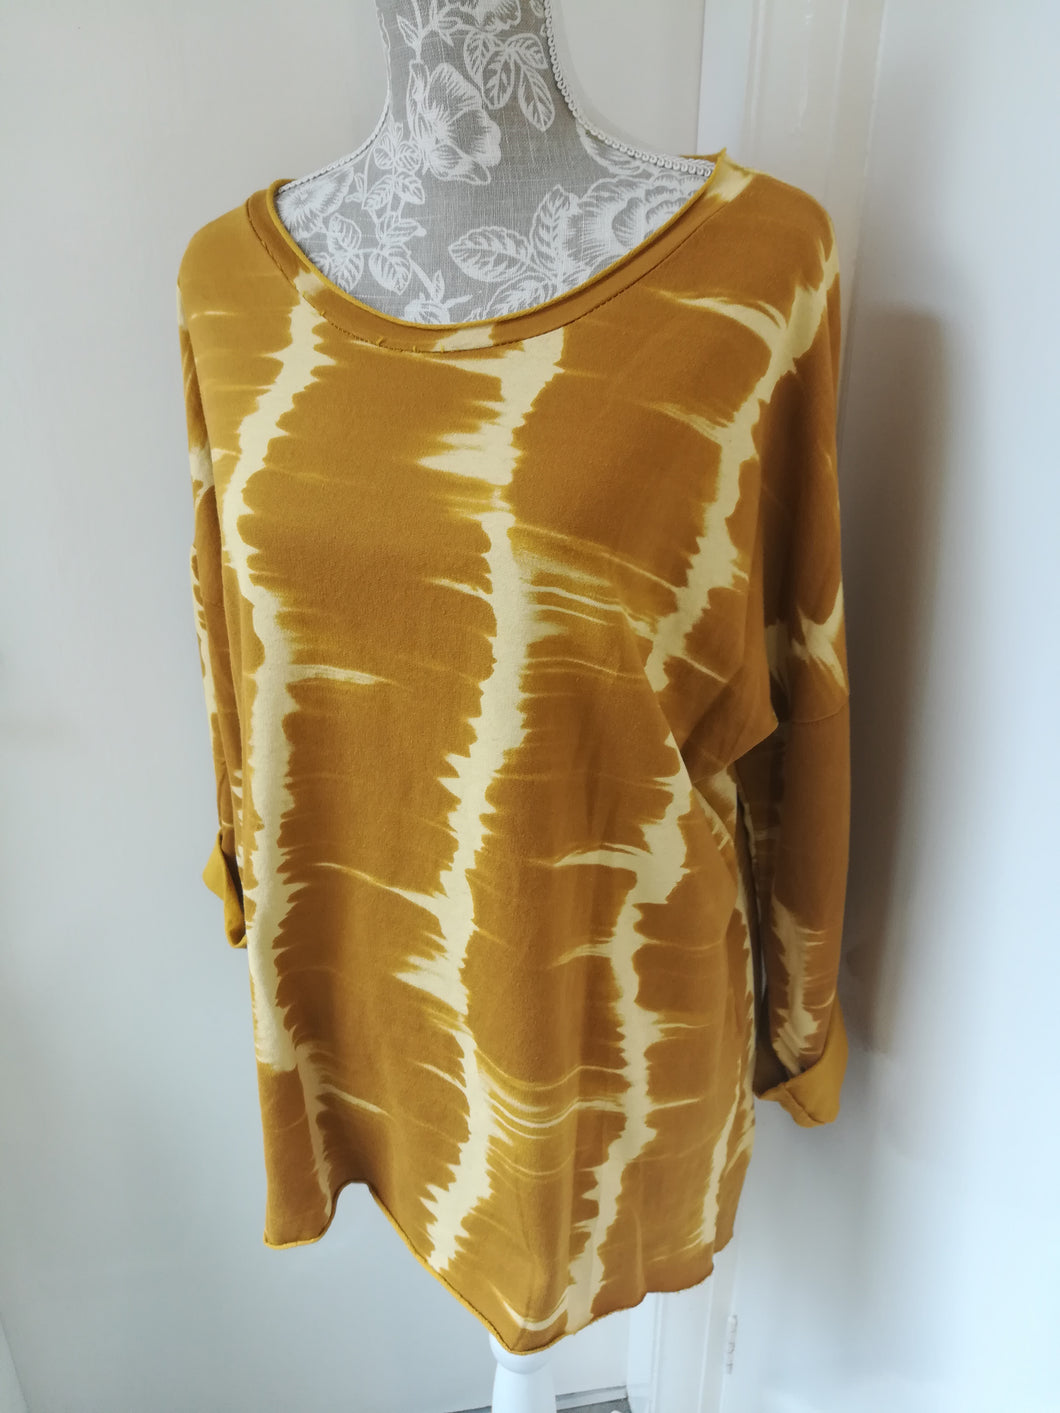 Mustard tye dye sweatshirt top one size 10/16